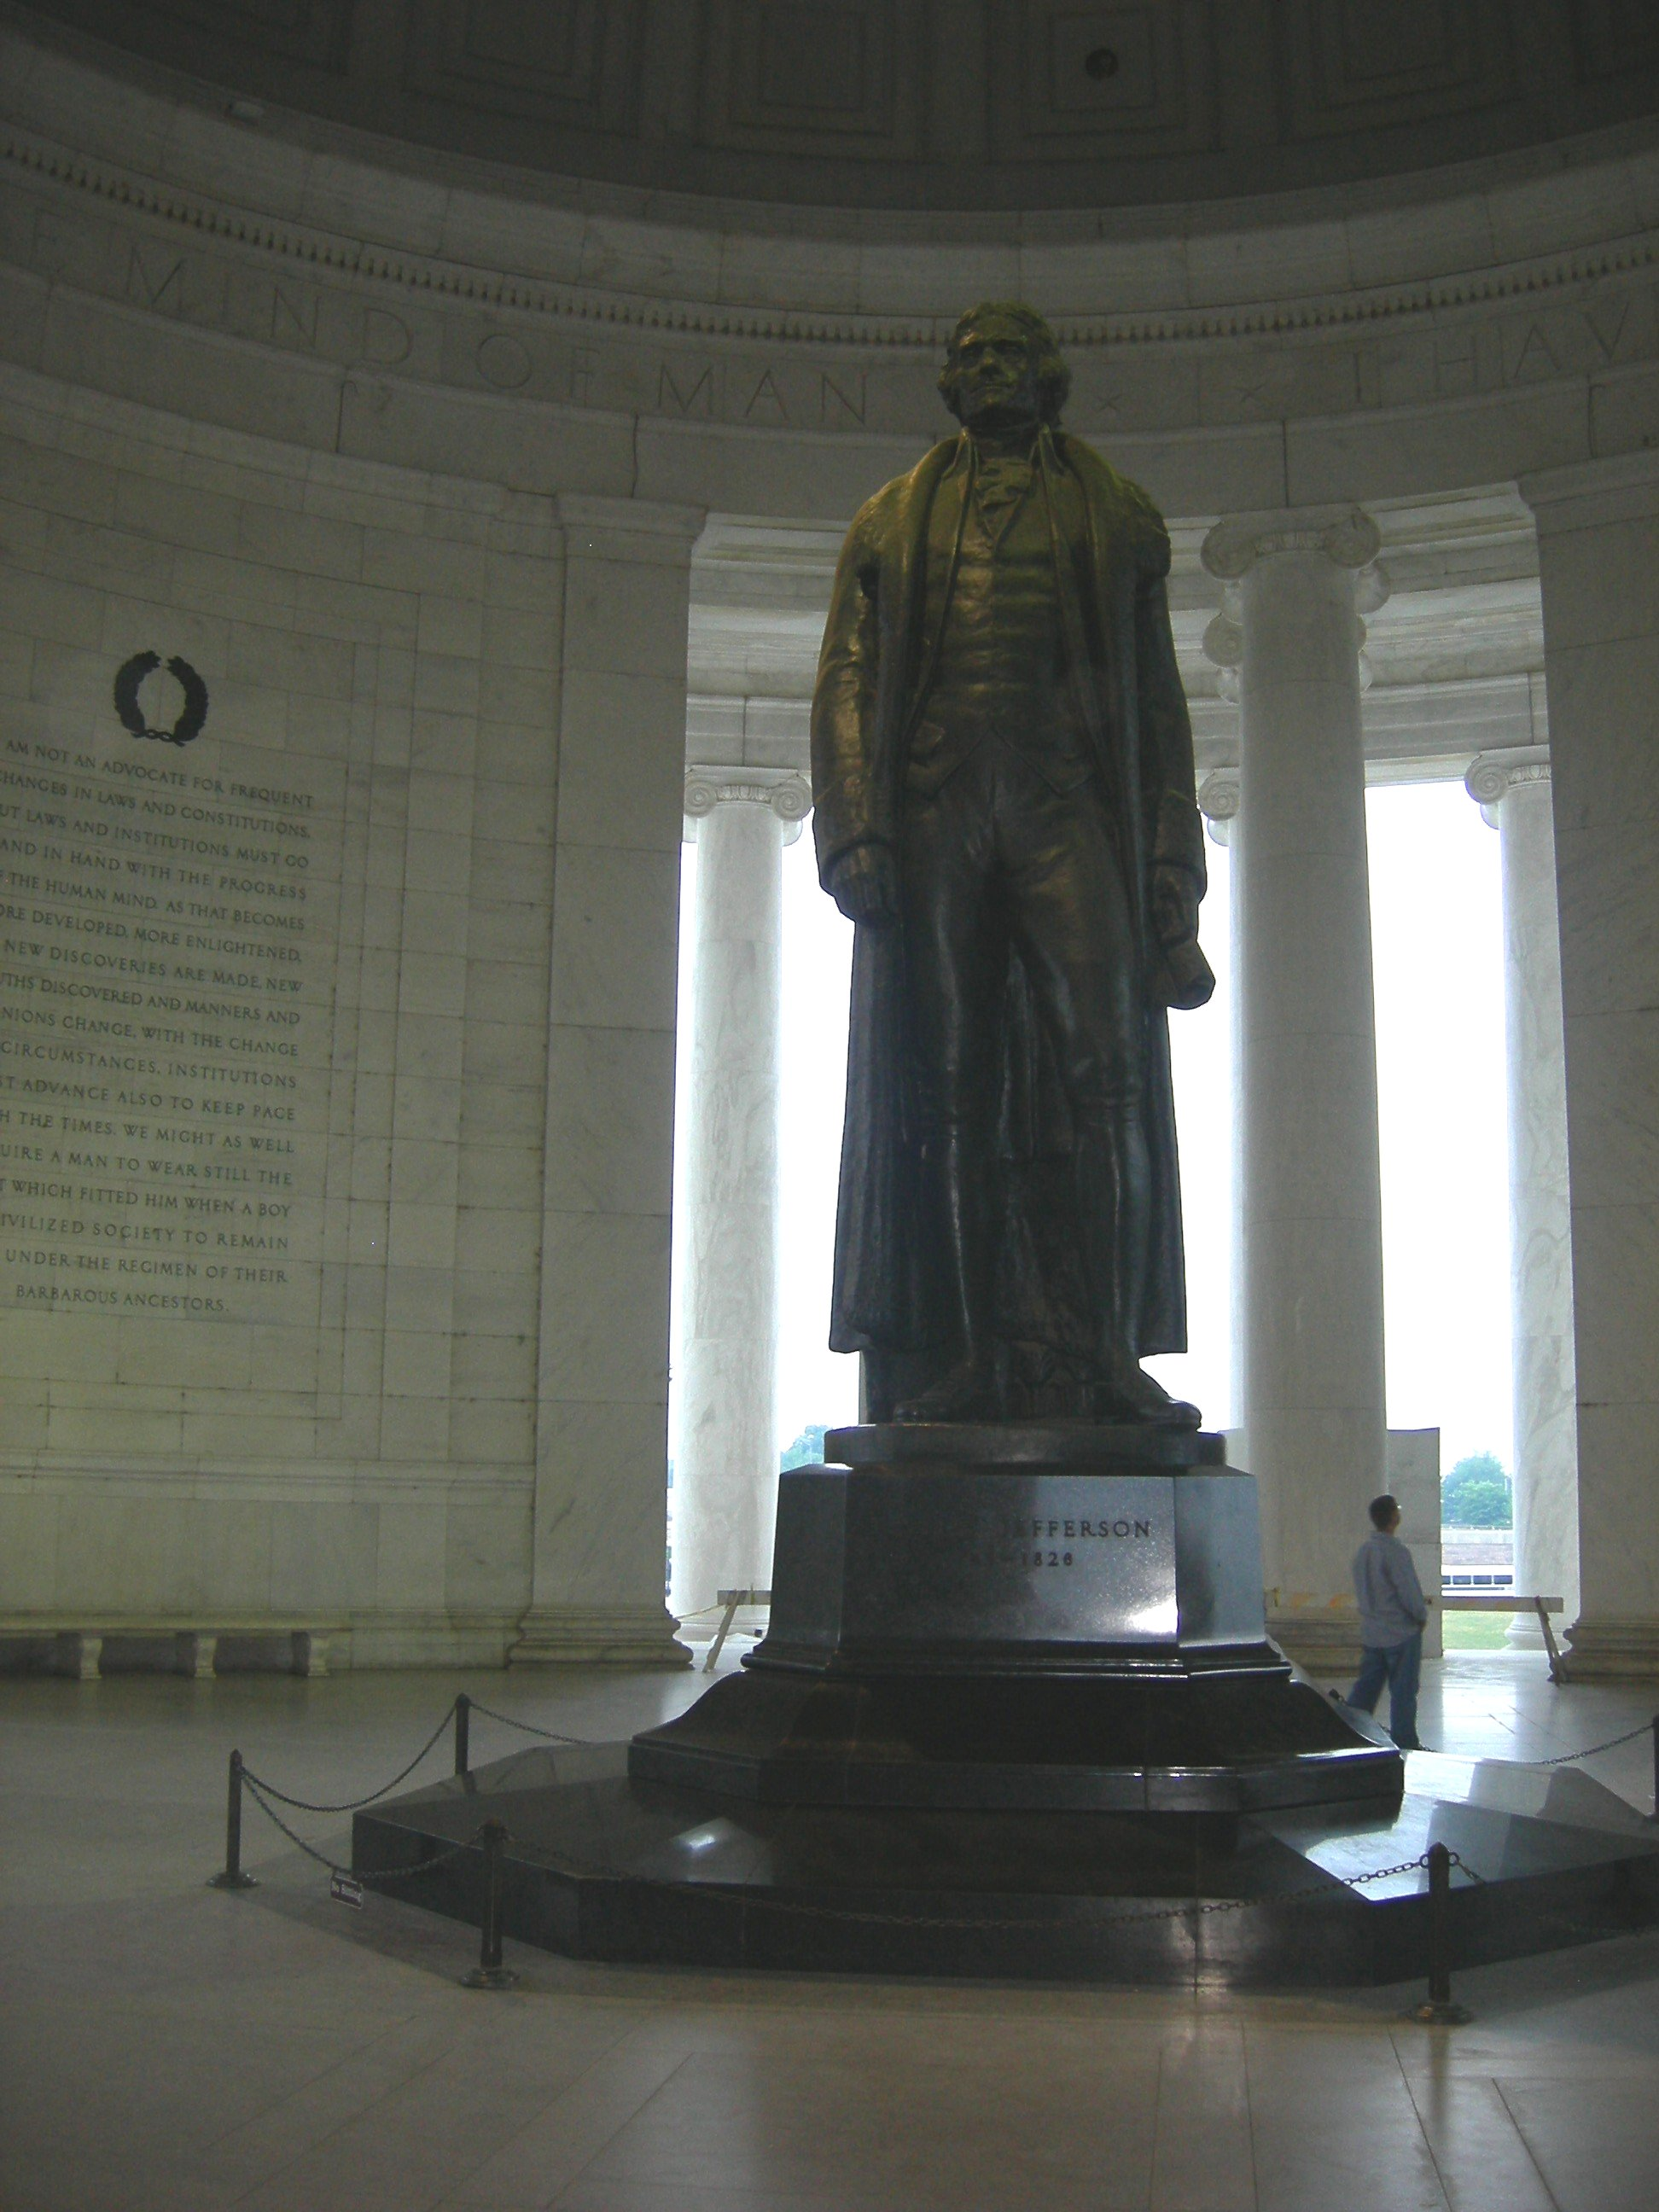 Pictures from Washington D.C. at Arlington National ...